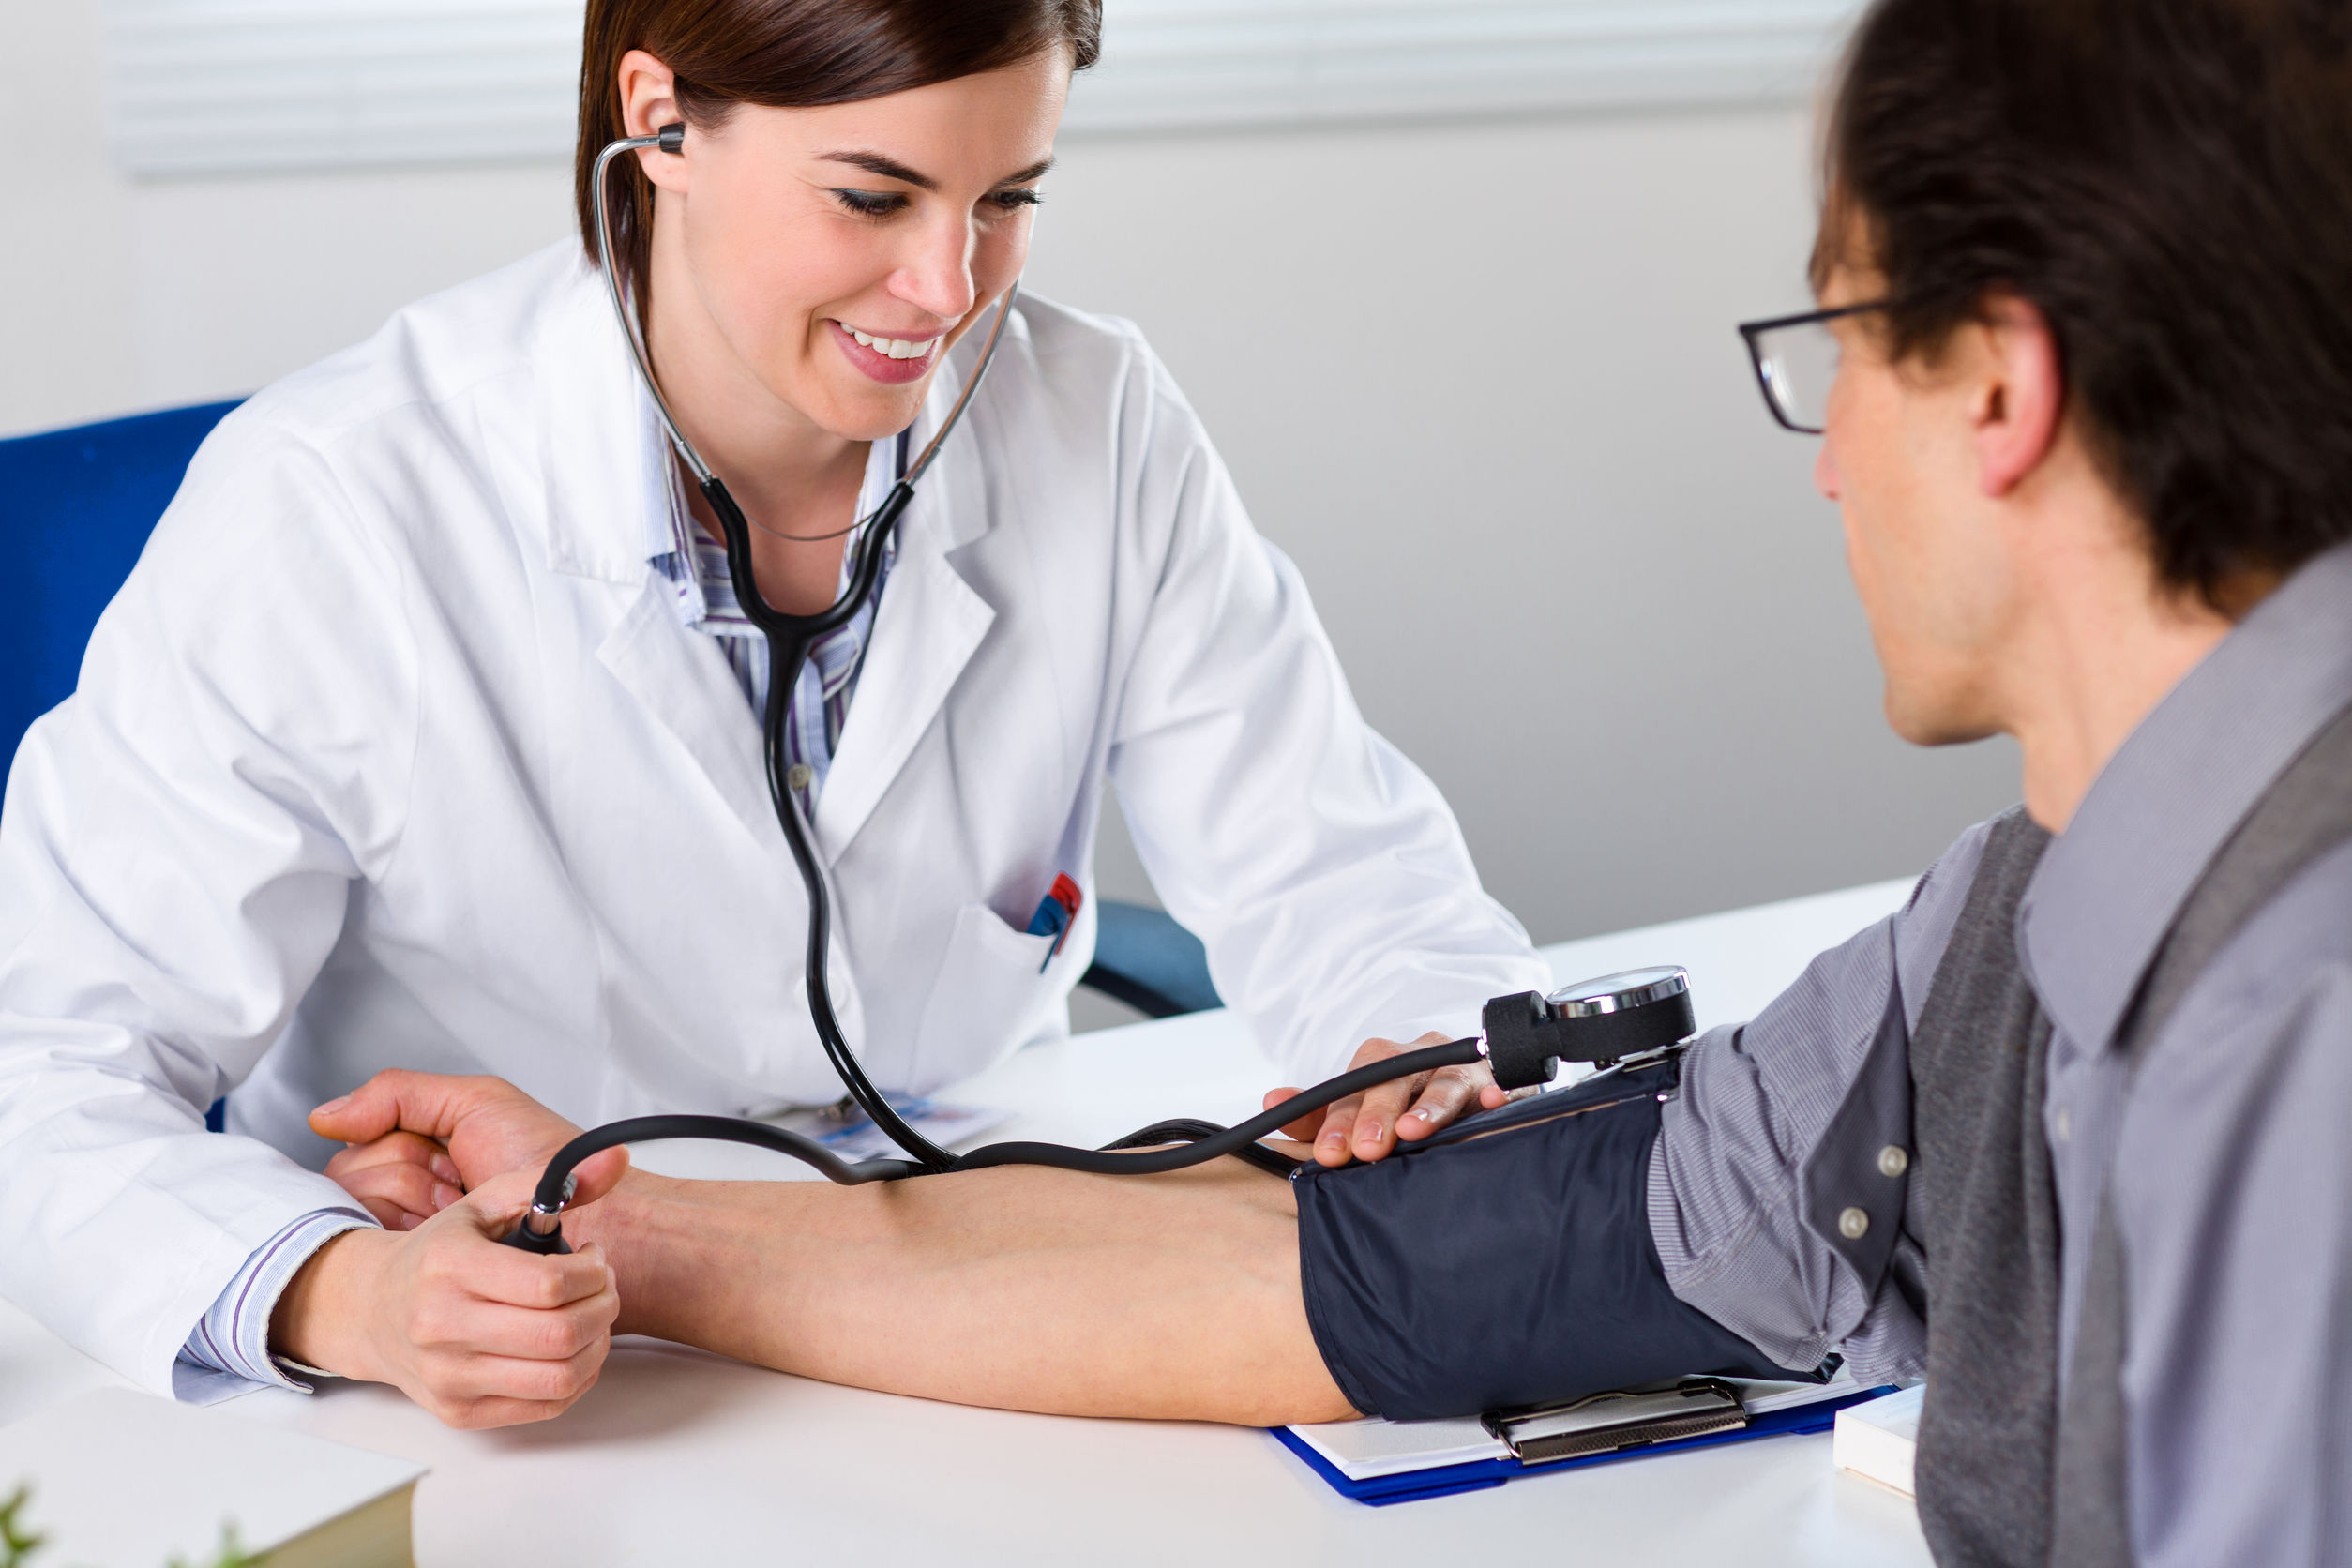 Blood pressure checks are important to control and monitor our cardiovascular system. Here are some useful tips about blood pressure checks and how to do one.